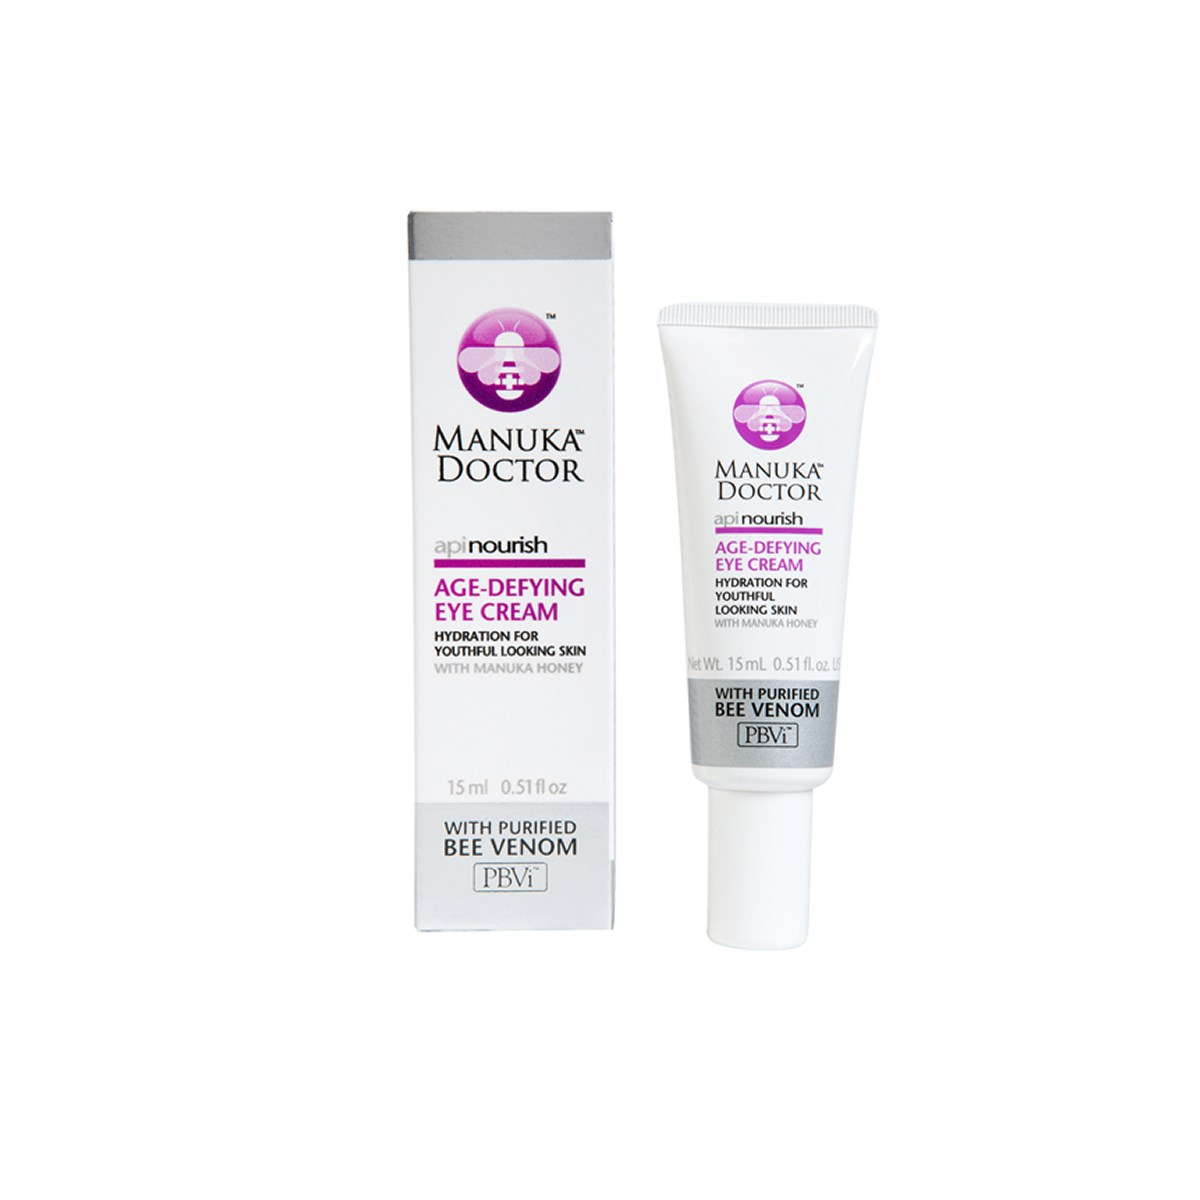 Manuka Doctor Apinourish Age-Defying Eye Cream